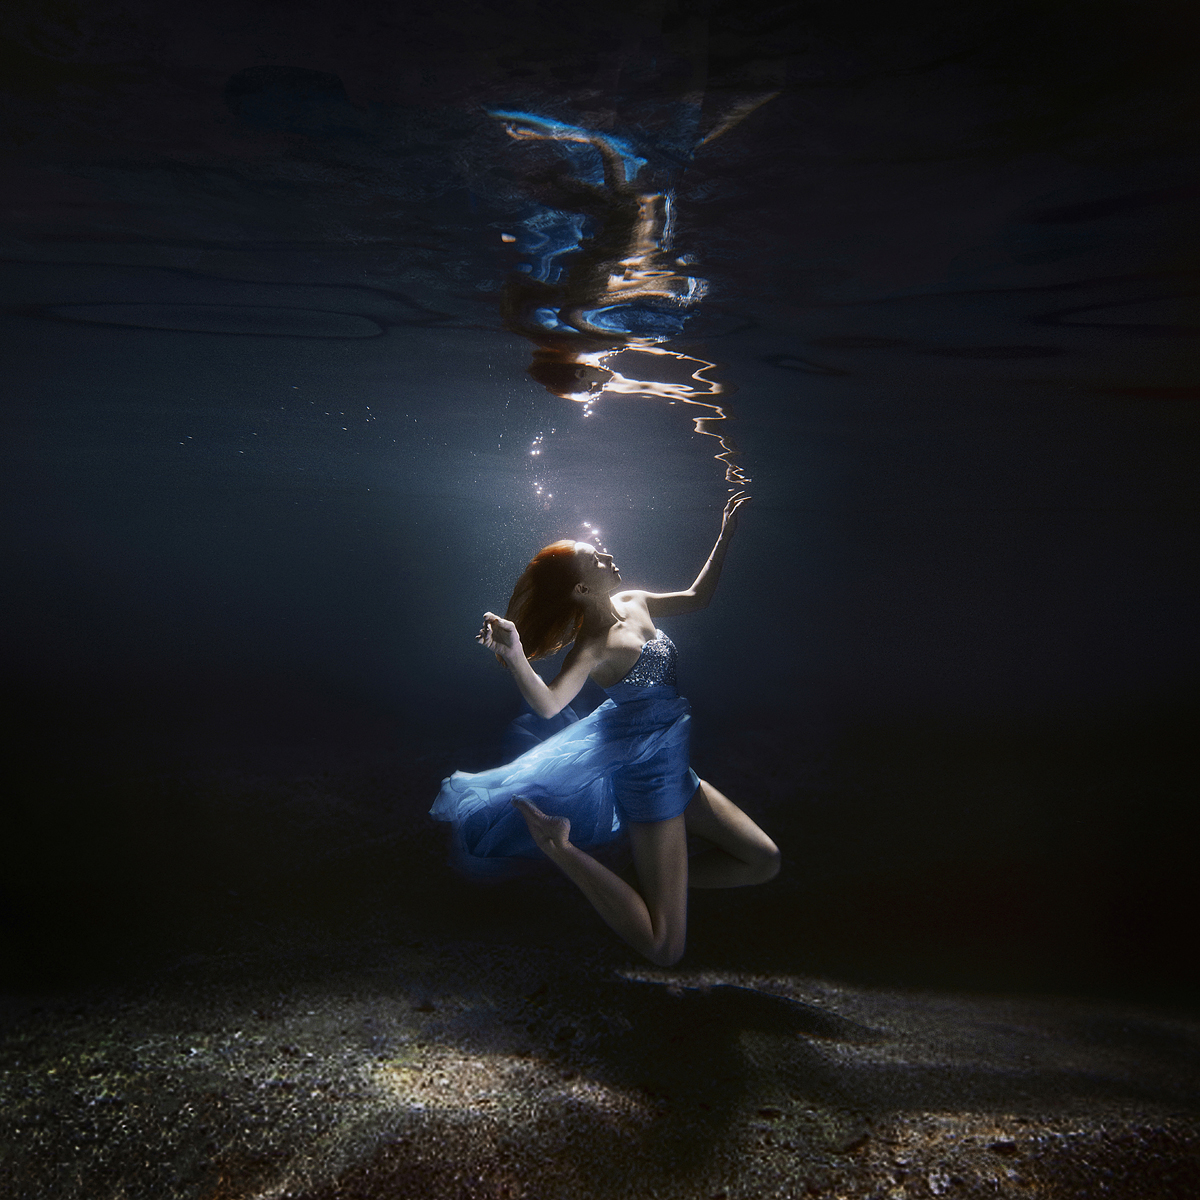 stylish-and-romantic-underwater-photography-by-glory-grebenkin-11